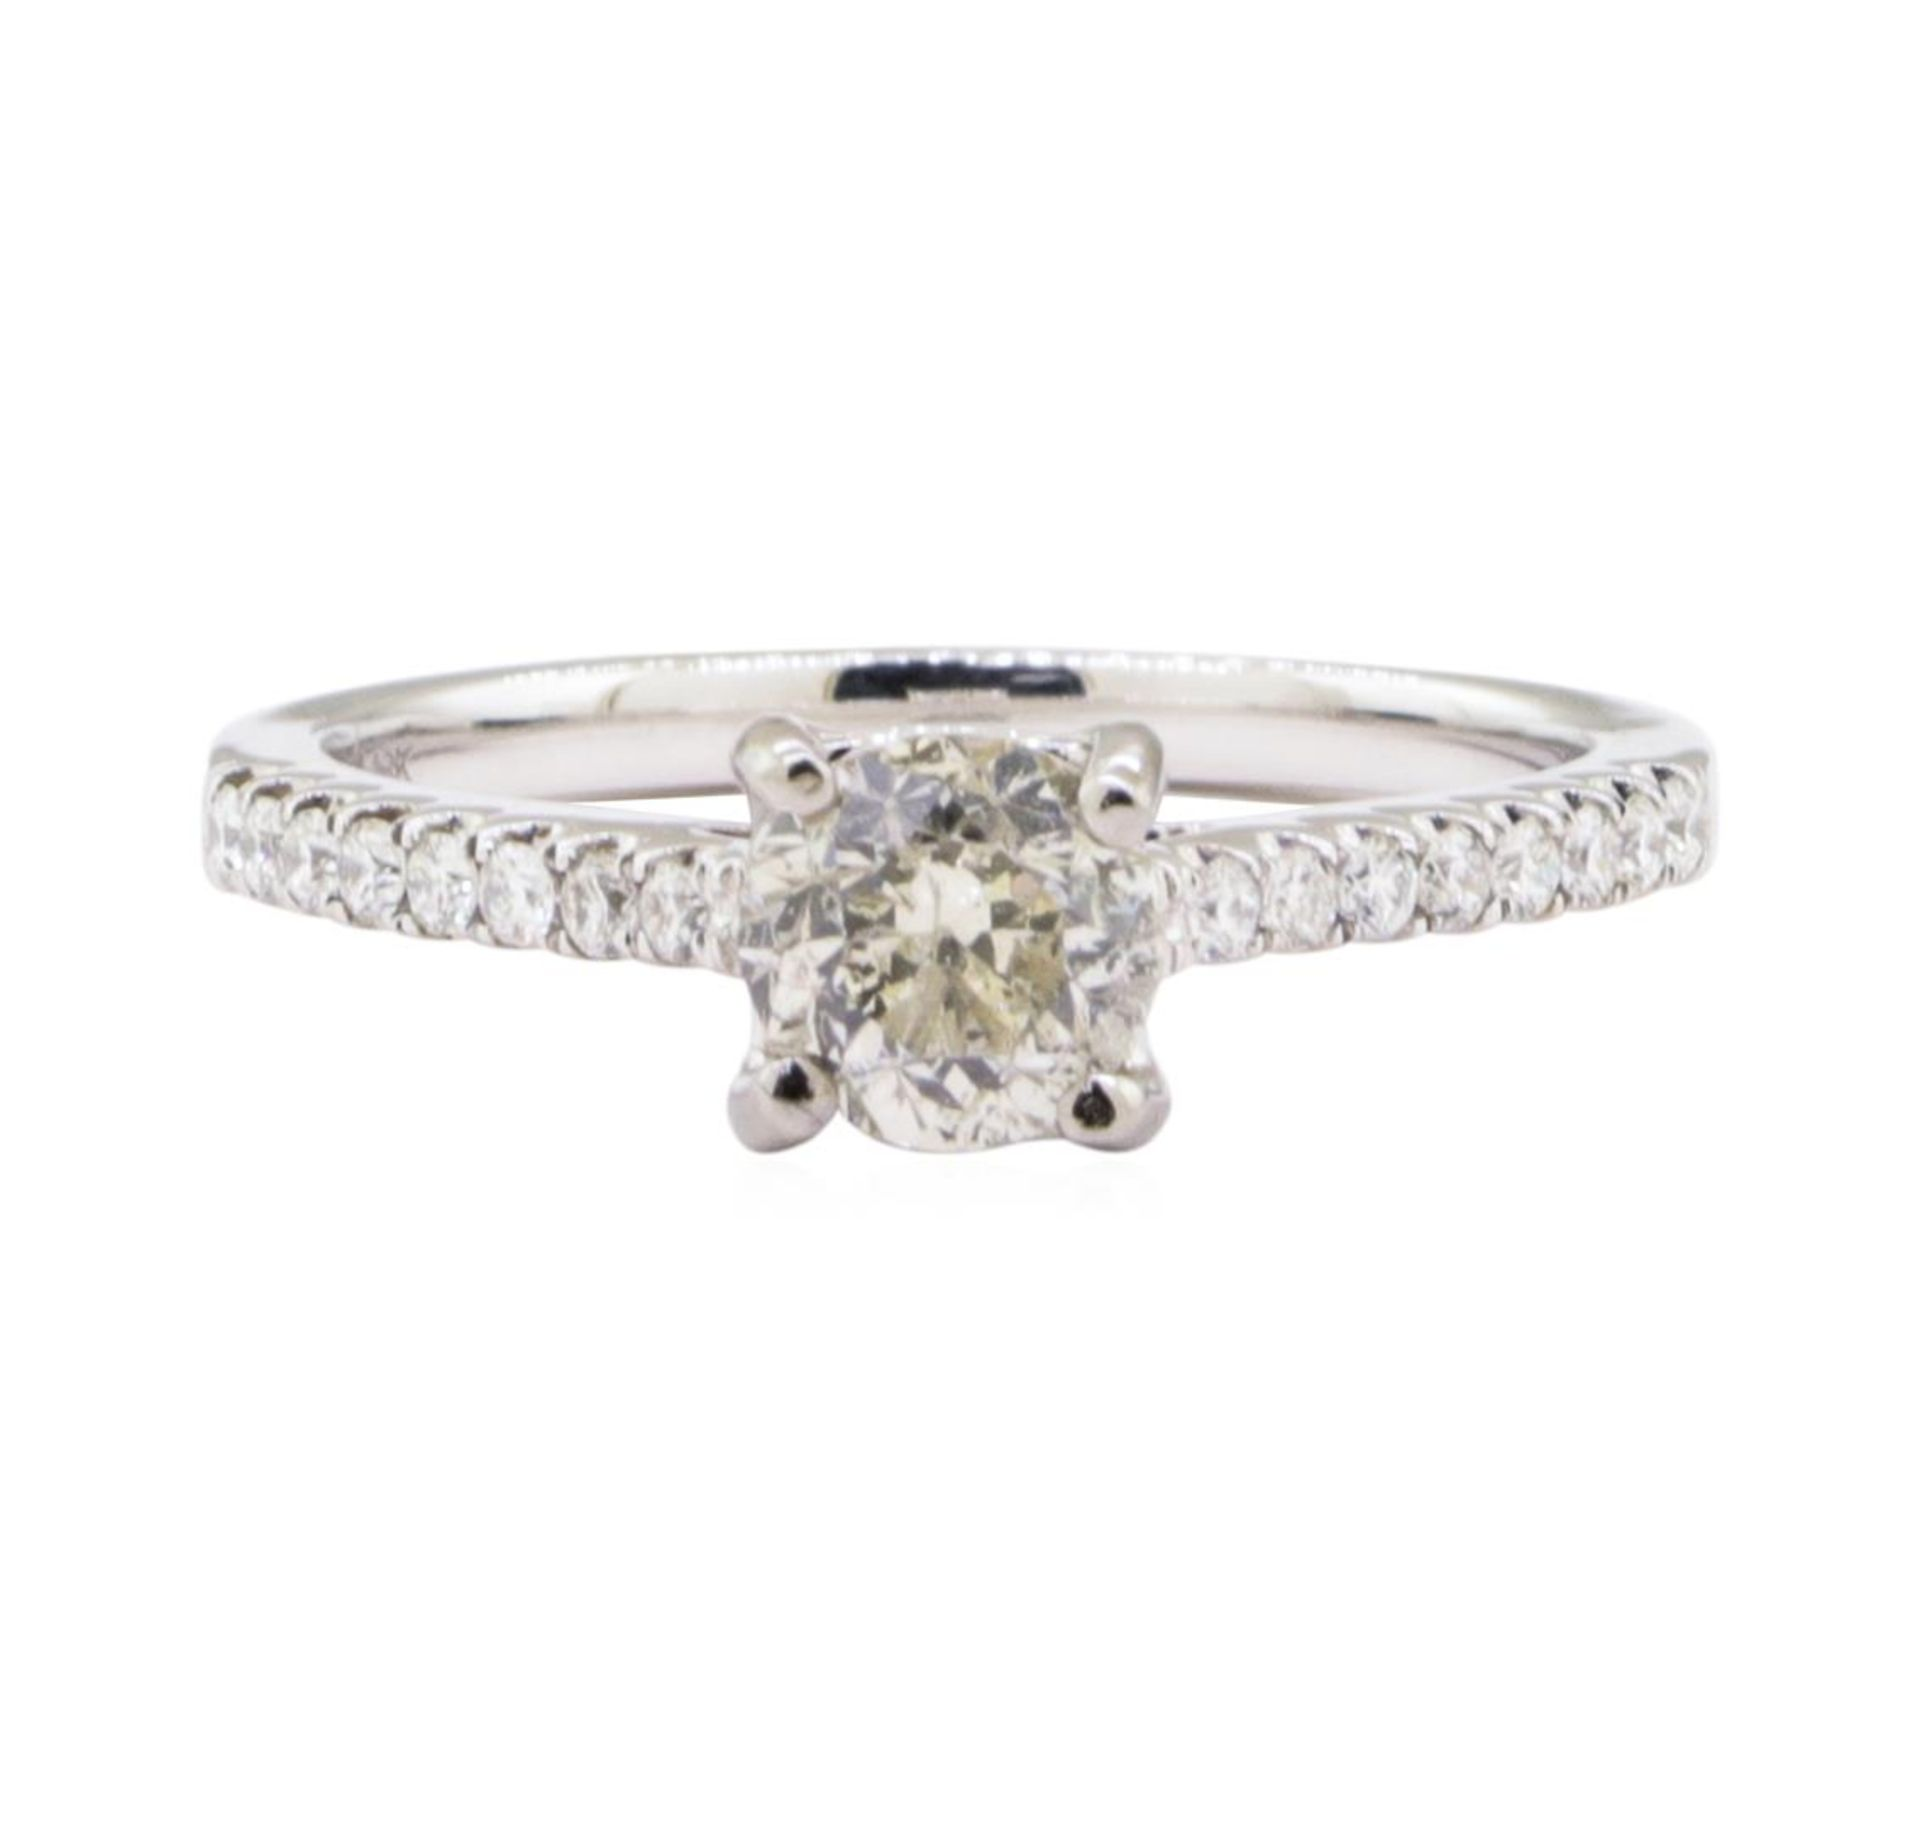 1.07ct Diamond Ring - 18KT White Gold - Image 2 of 4